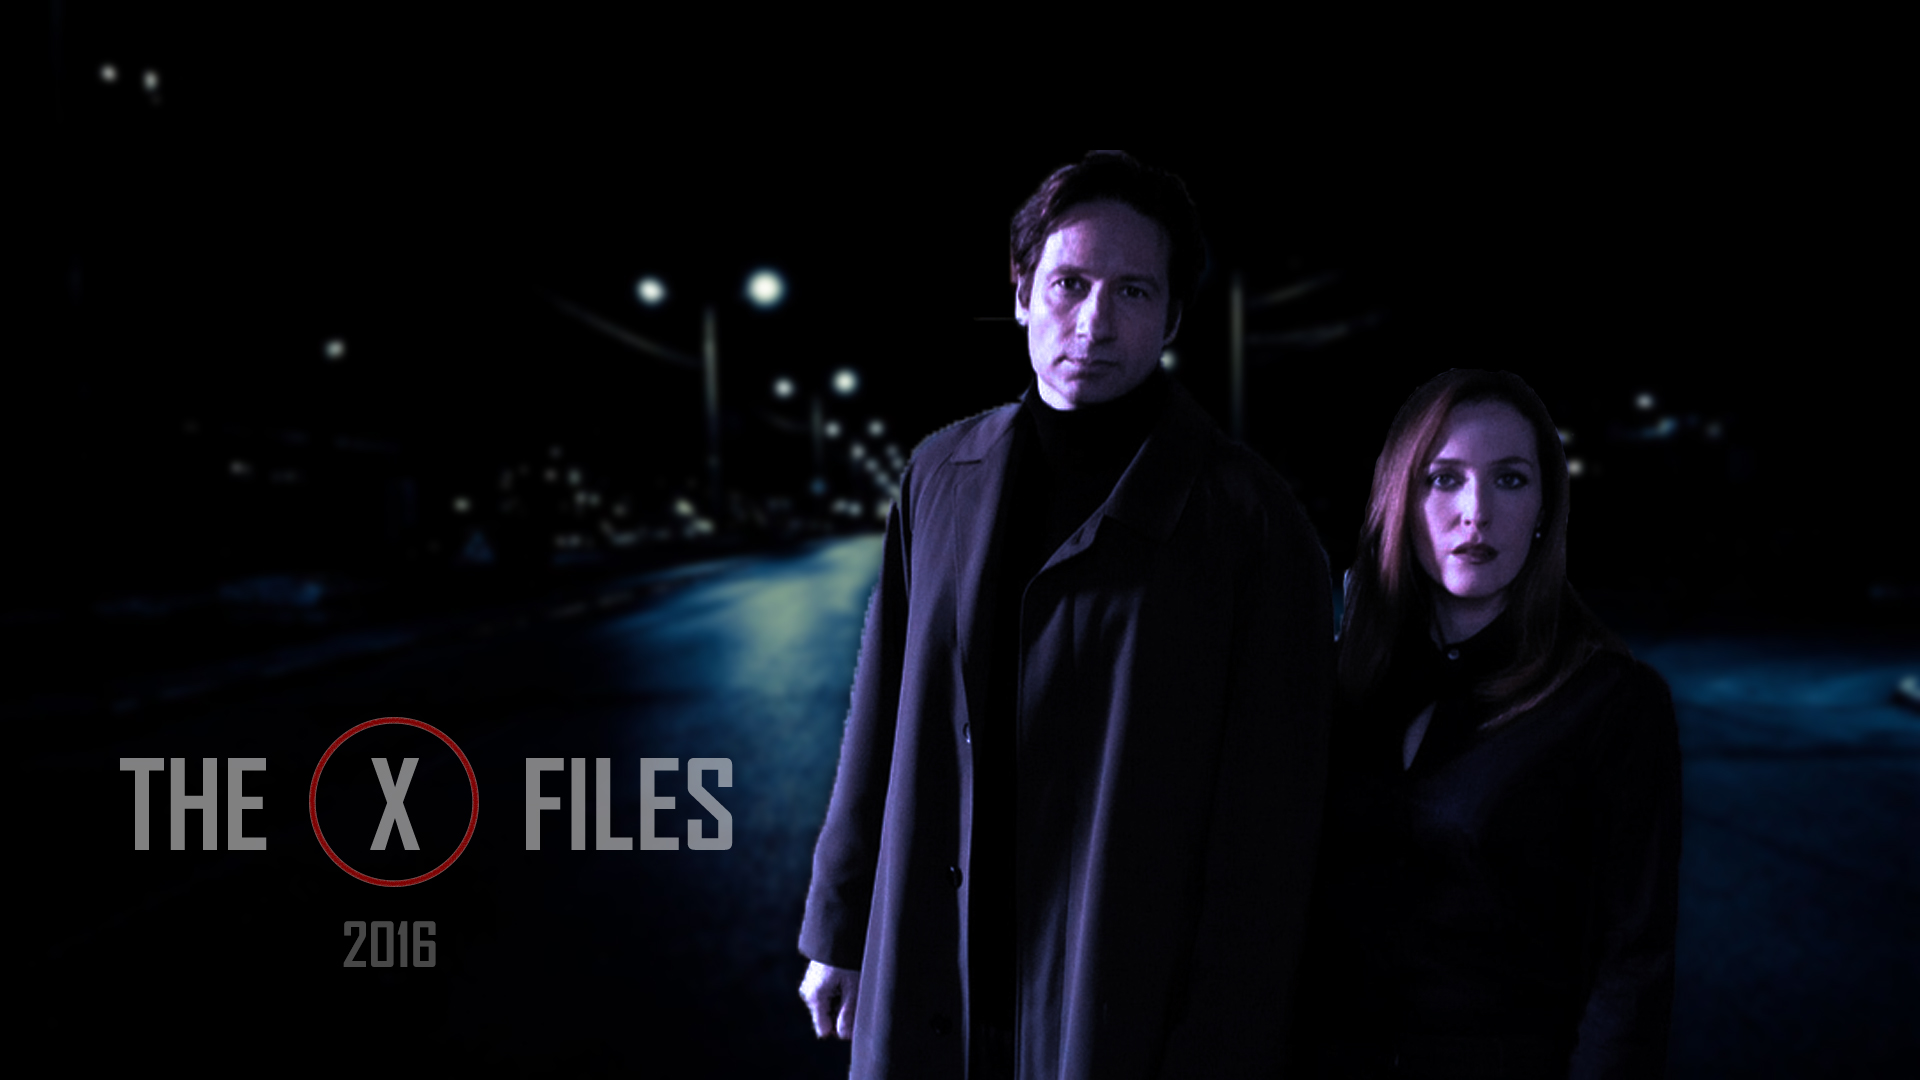 the x files 2016 hd wallpapers